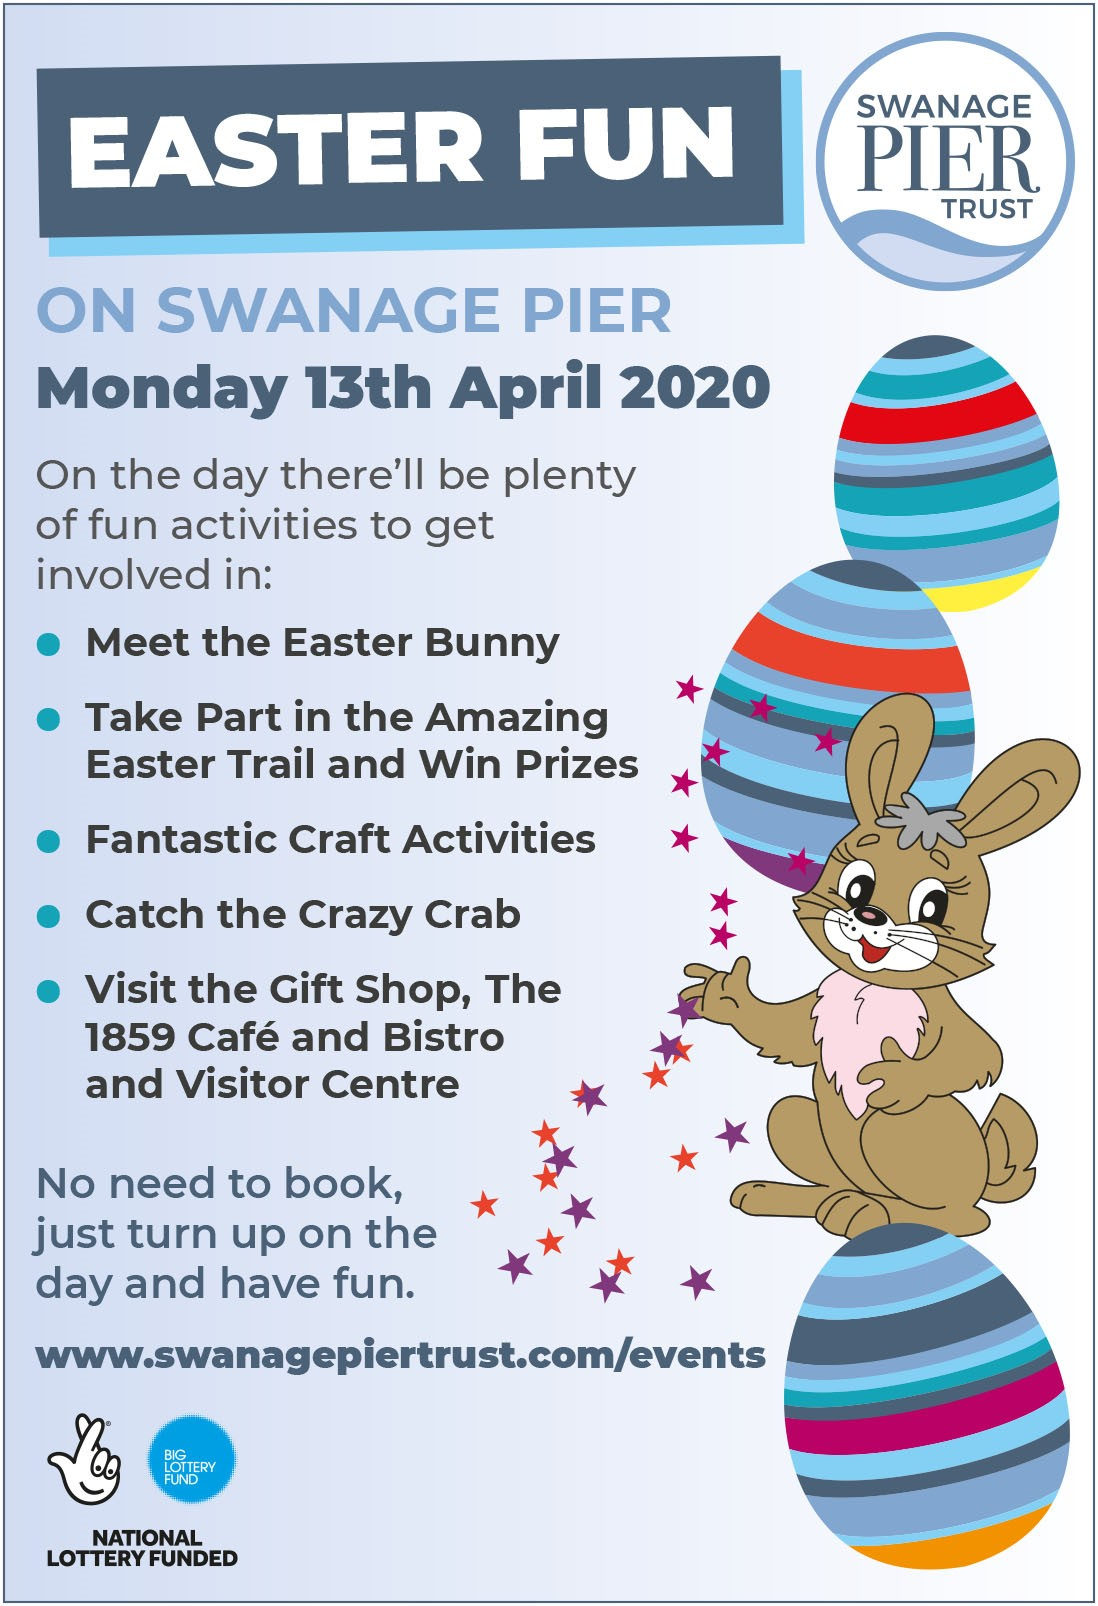 Easter Fun on Swanage Pier